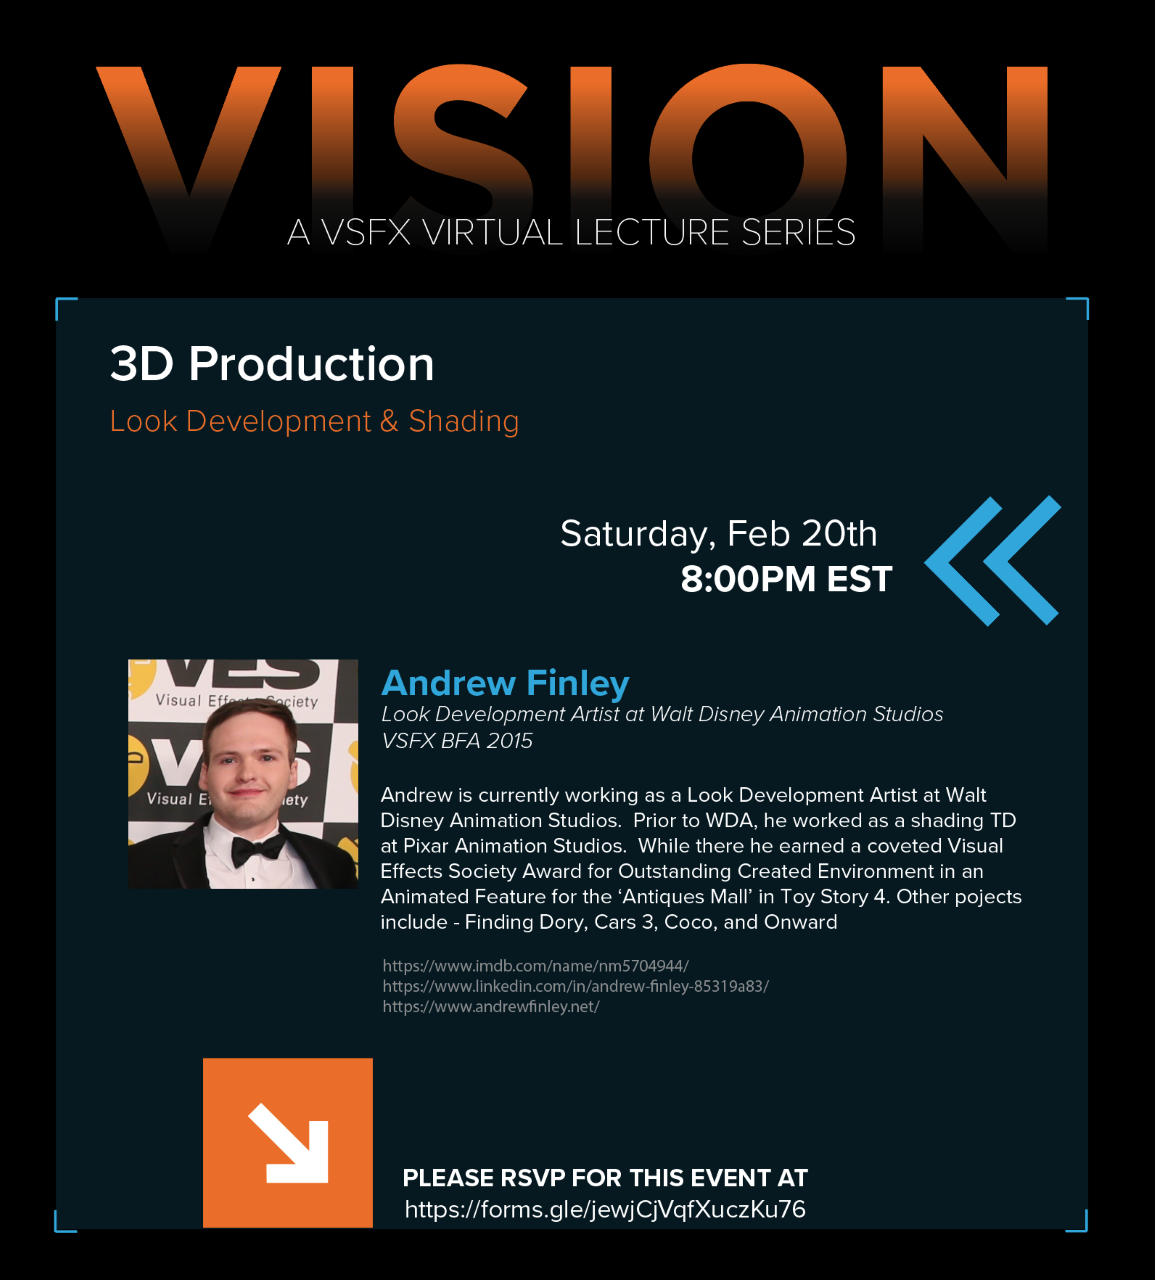 VISION Presents Andrew Finley